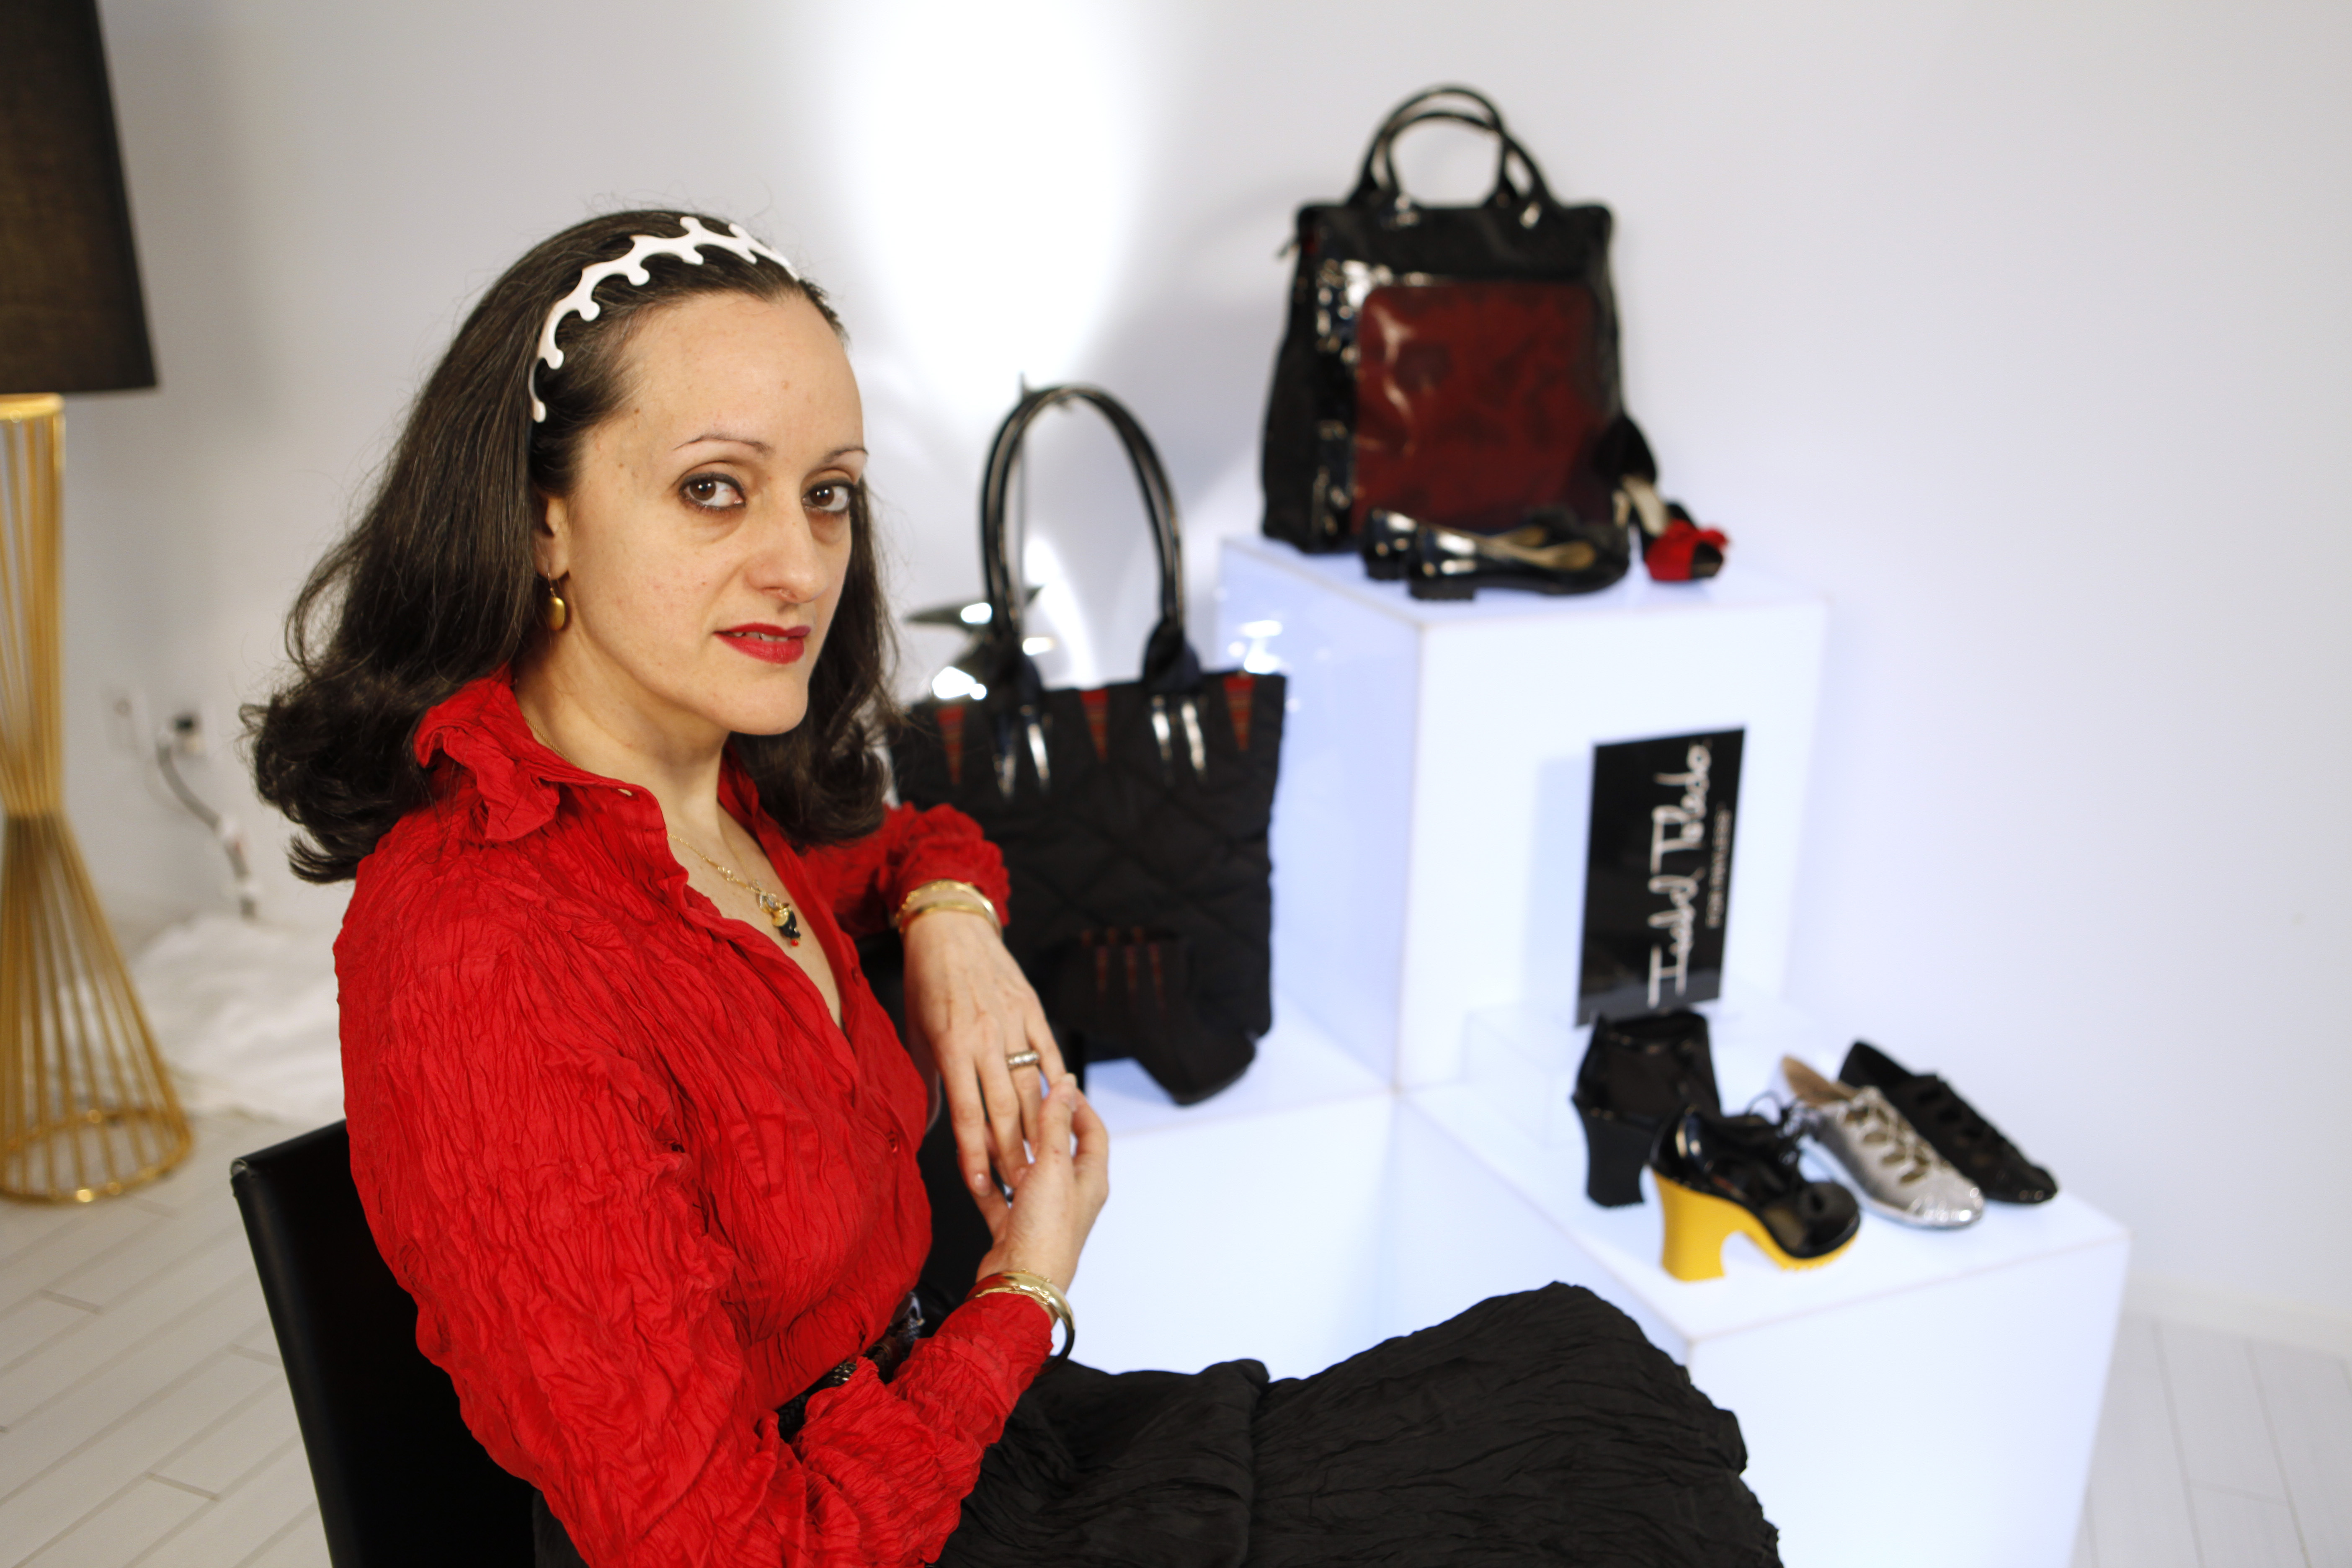 Designer Isabel Toledo poses with her shoes and handbags designed for Payless ShoeSource in Miami Beach, Florida, in 2010.